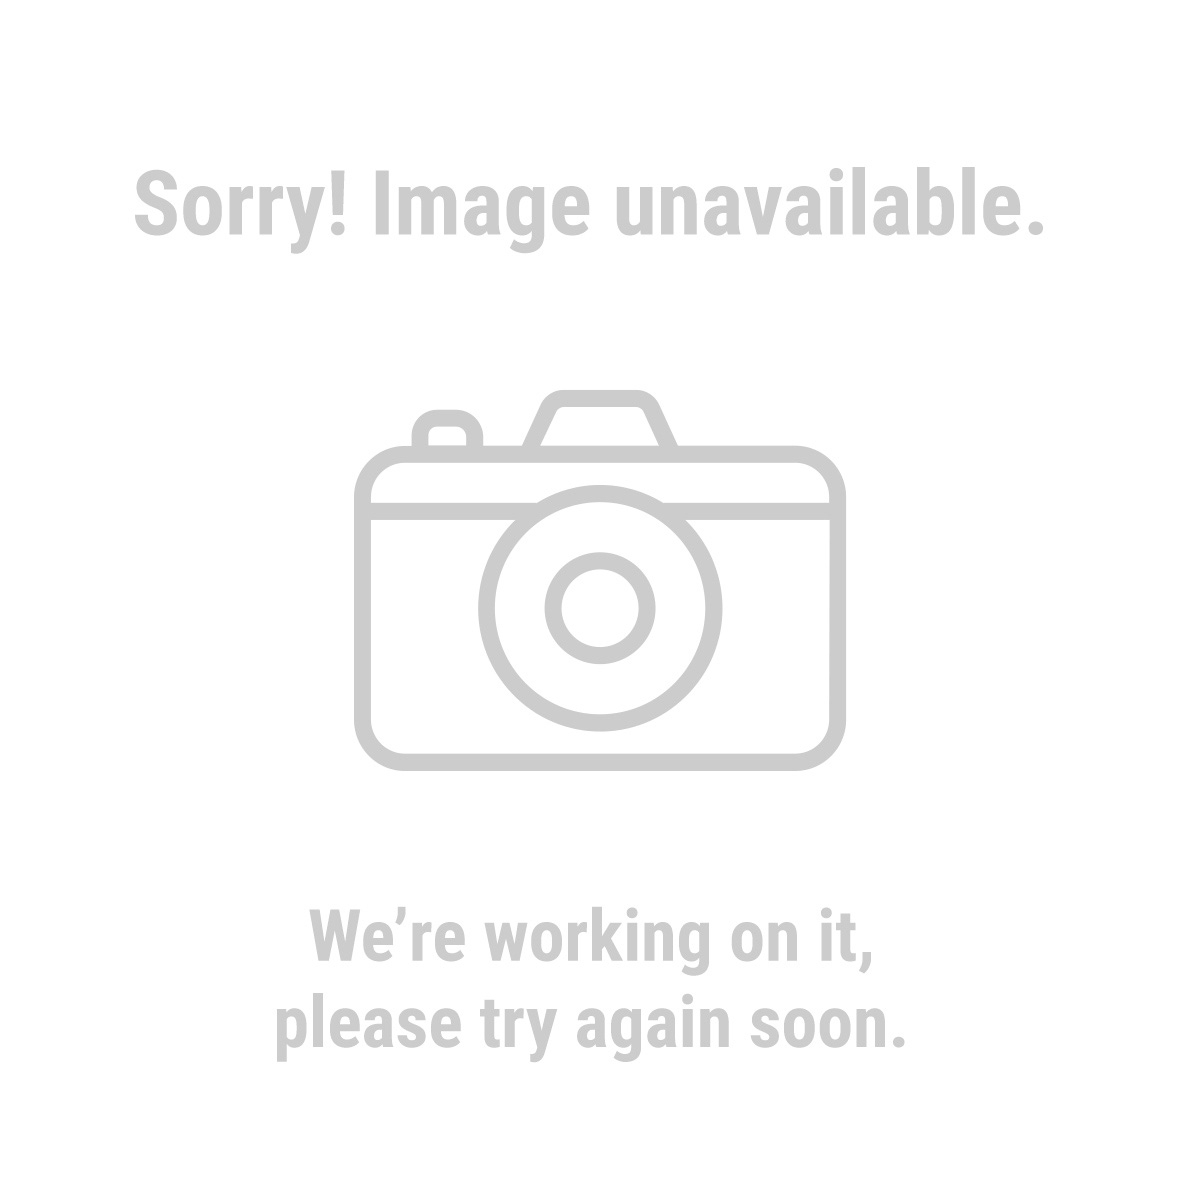 Drill Master 61659 6 in. 5.5 Amp Cut-Off Saw